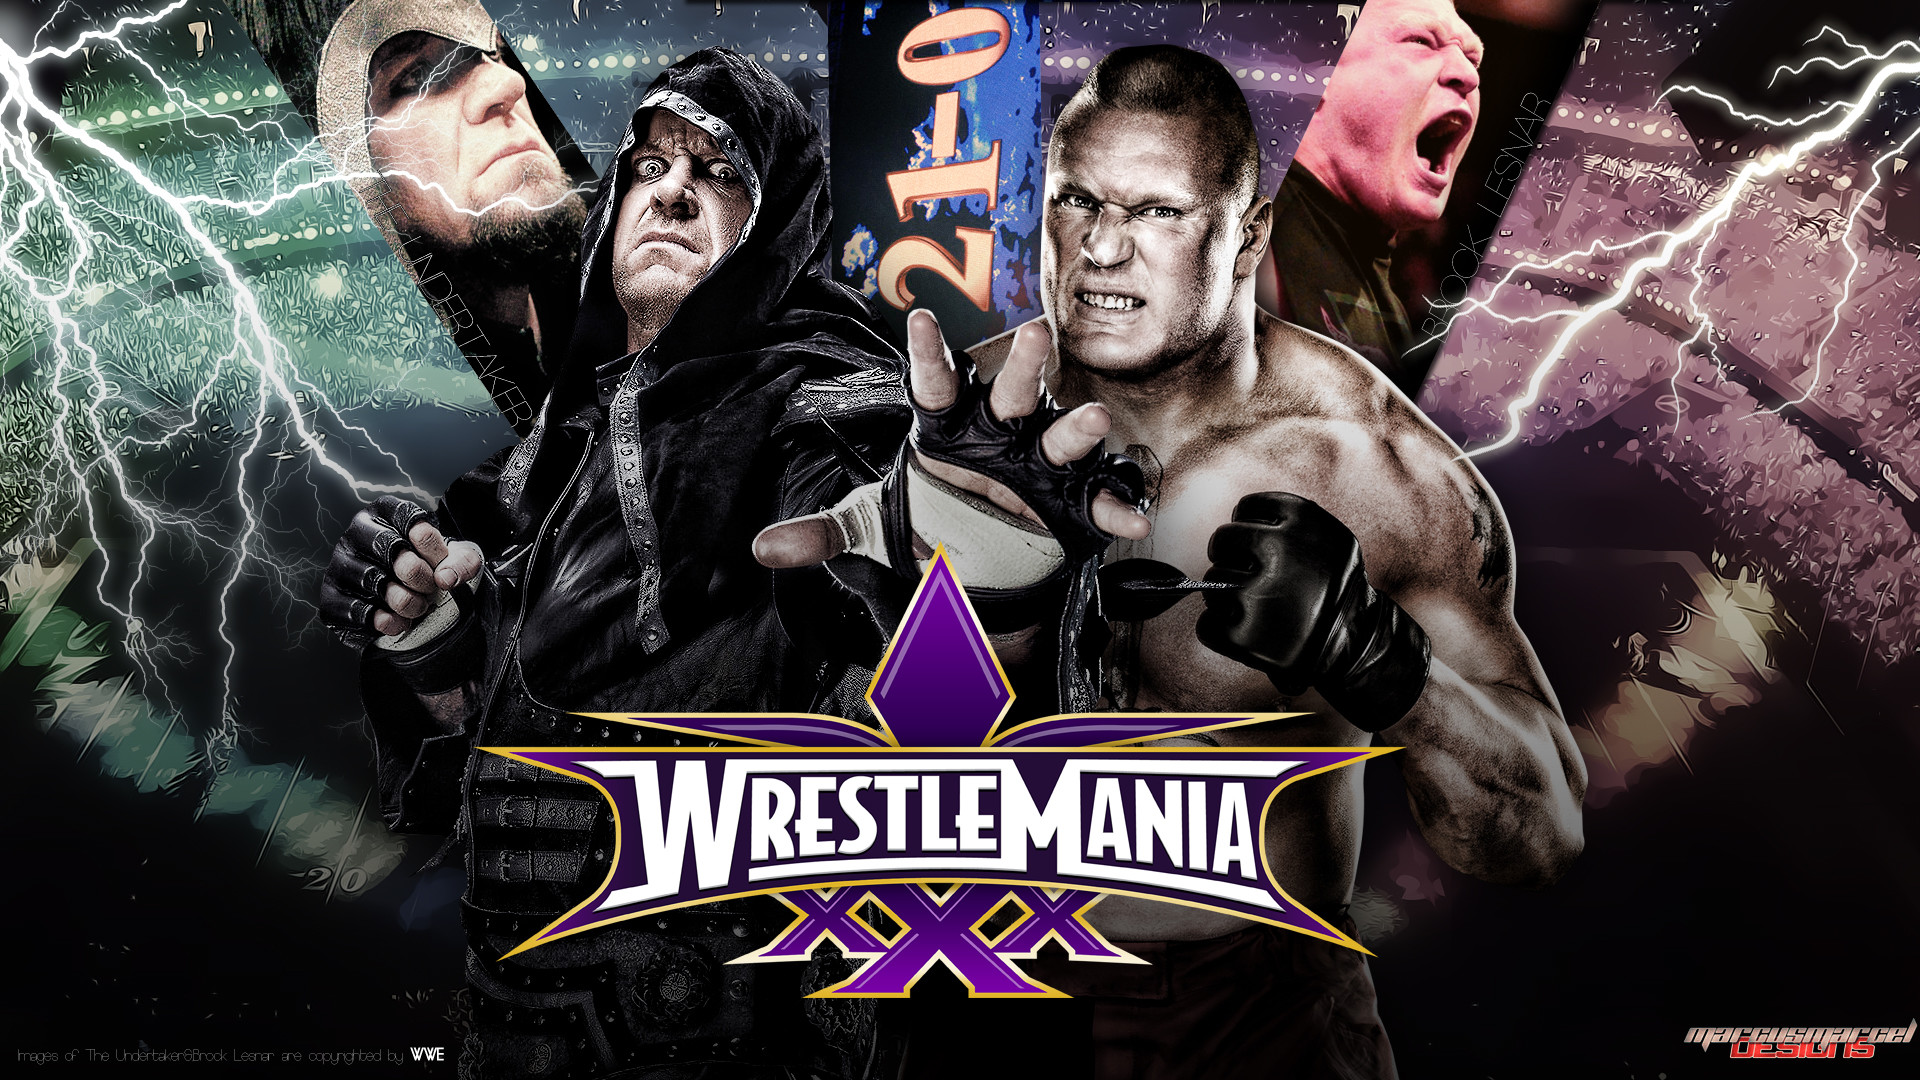 1920x1080 RicGrayDesign 9 0 WrestleMania XXX - Undertaker vs Brock Lesnar by  MarcusMarcel